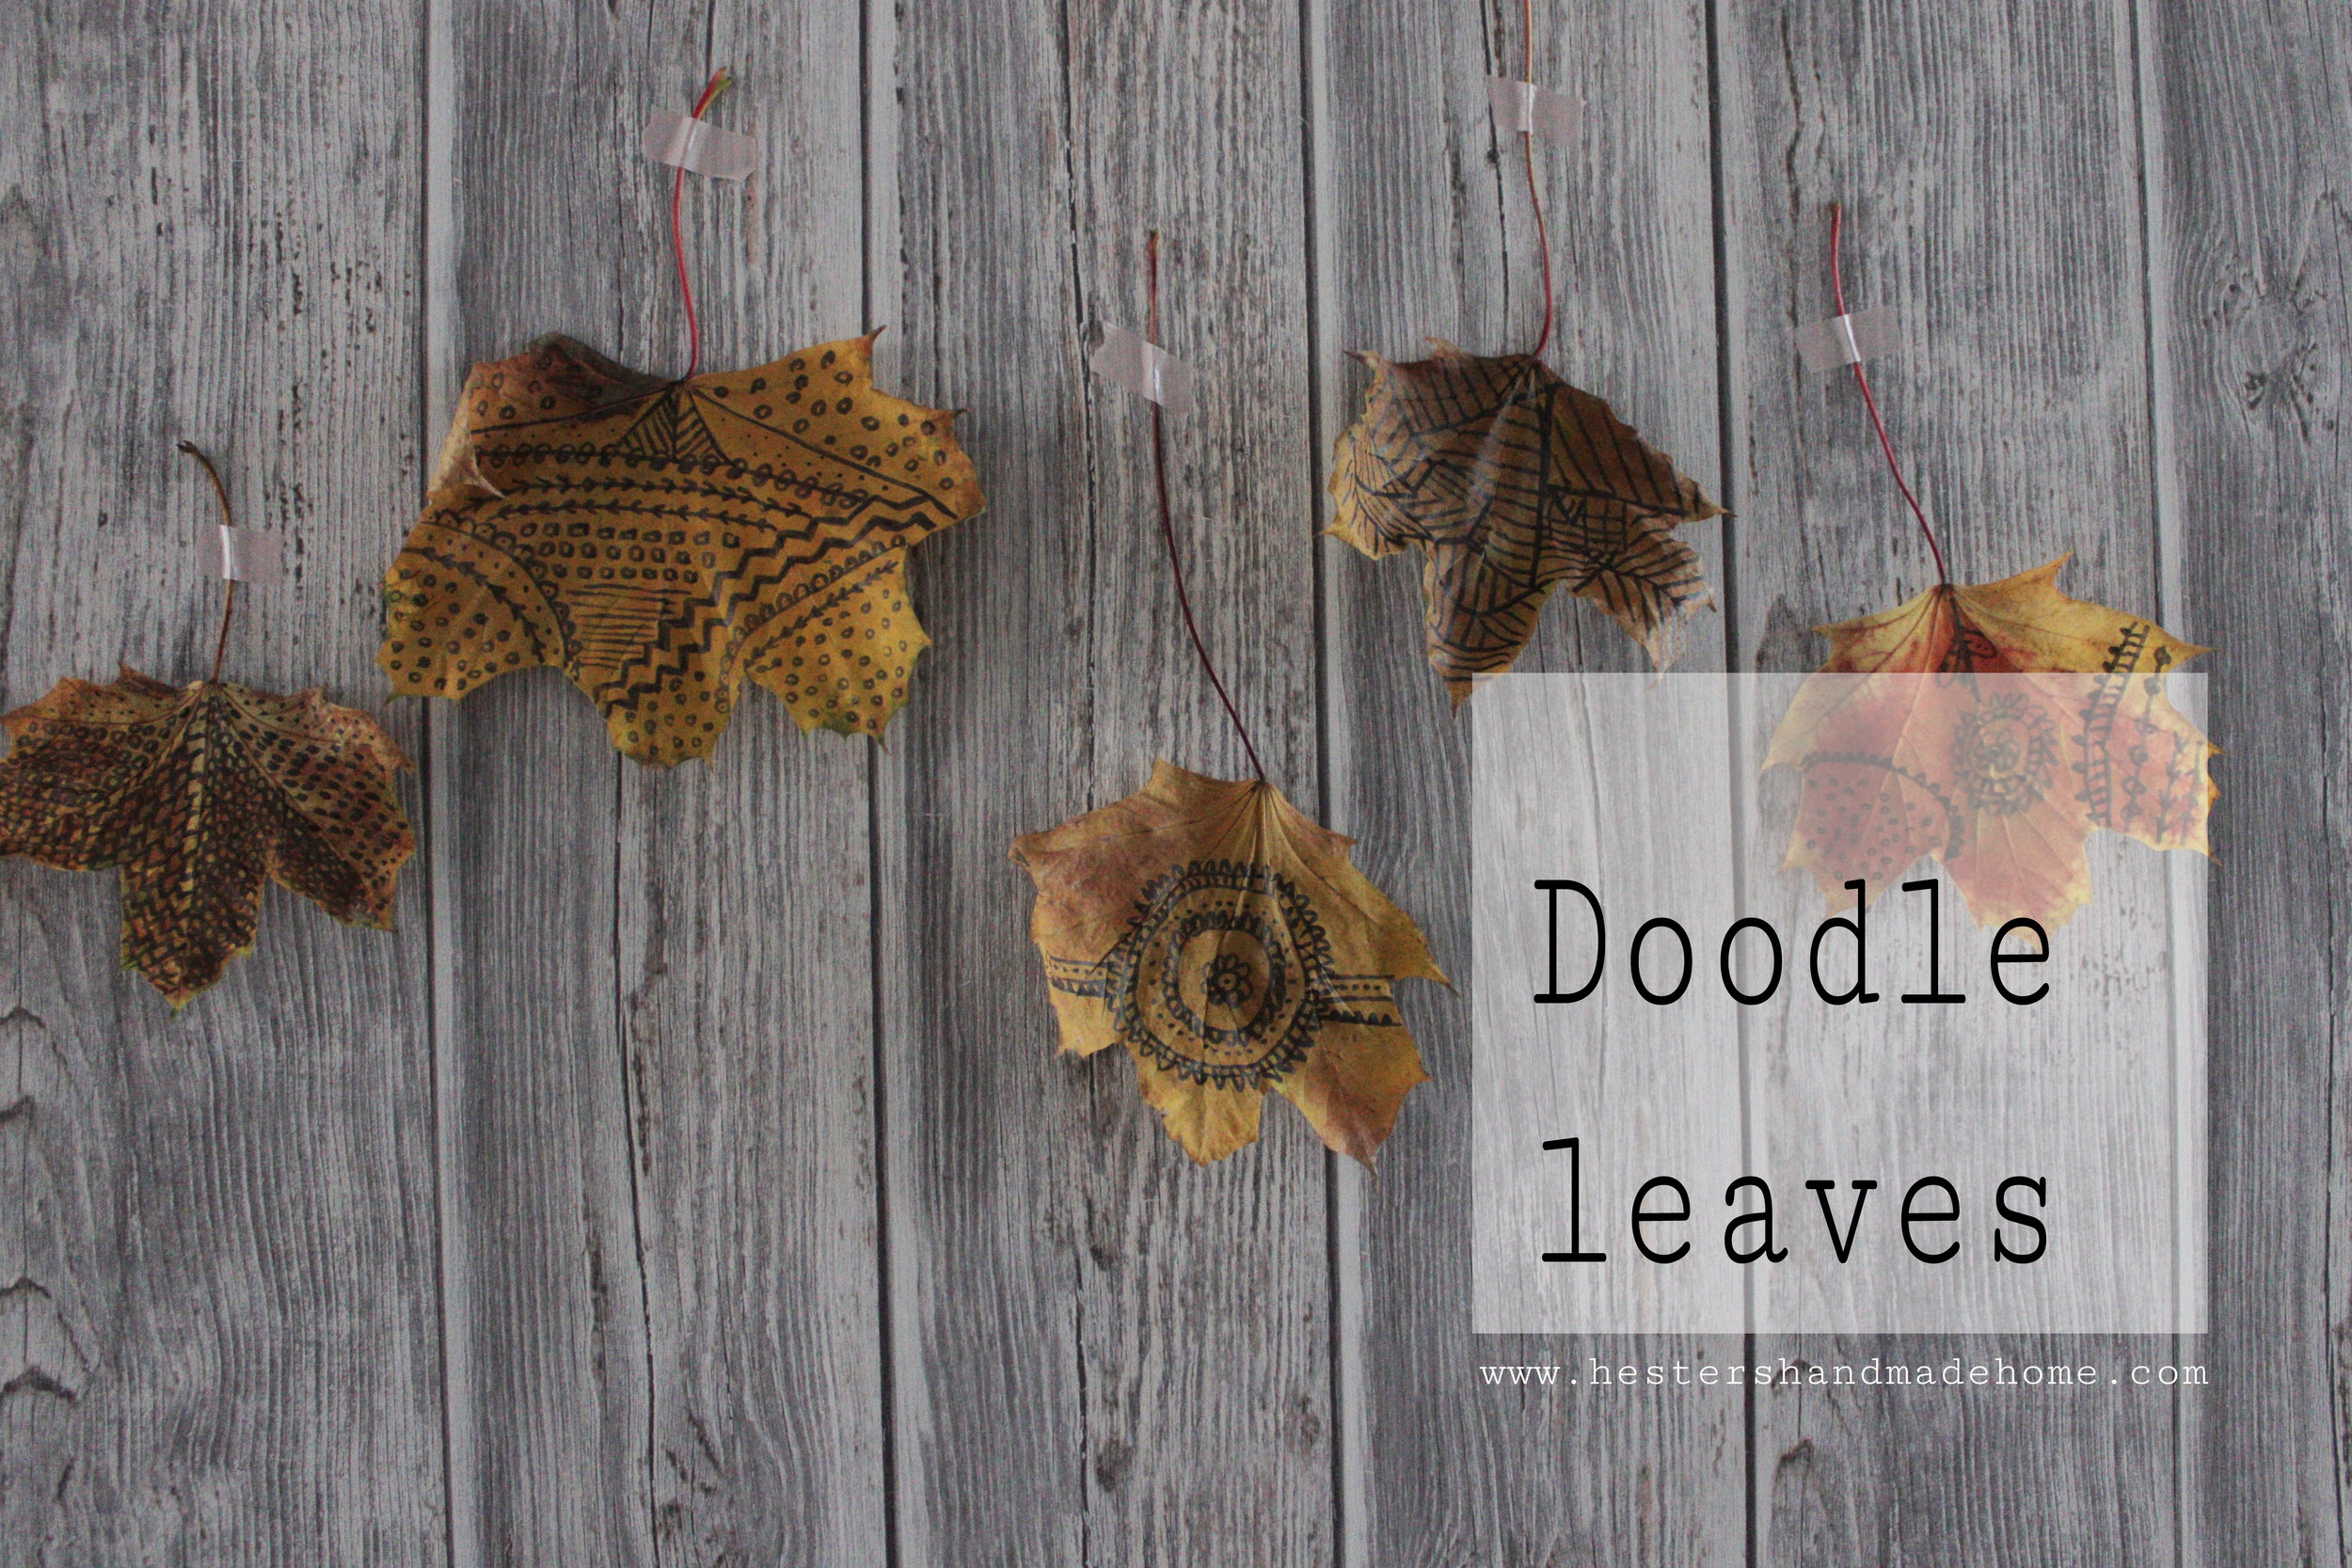 doodle leaves, tutorial by www.hestershandmadehome.com